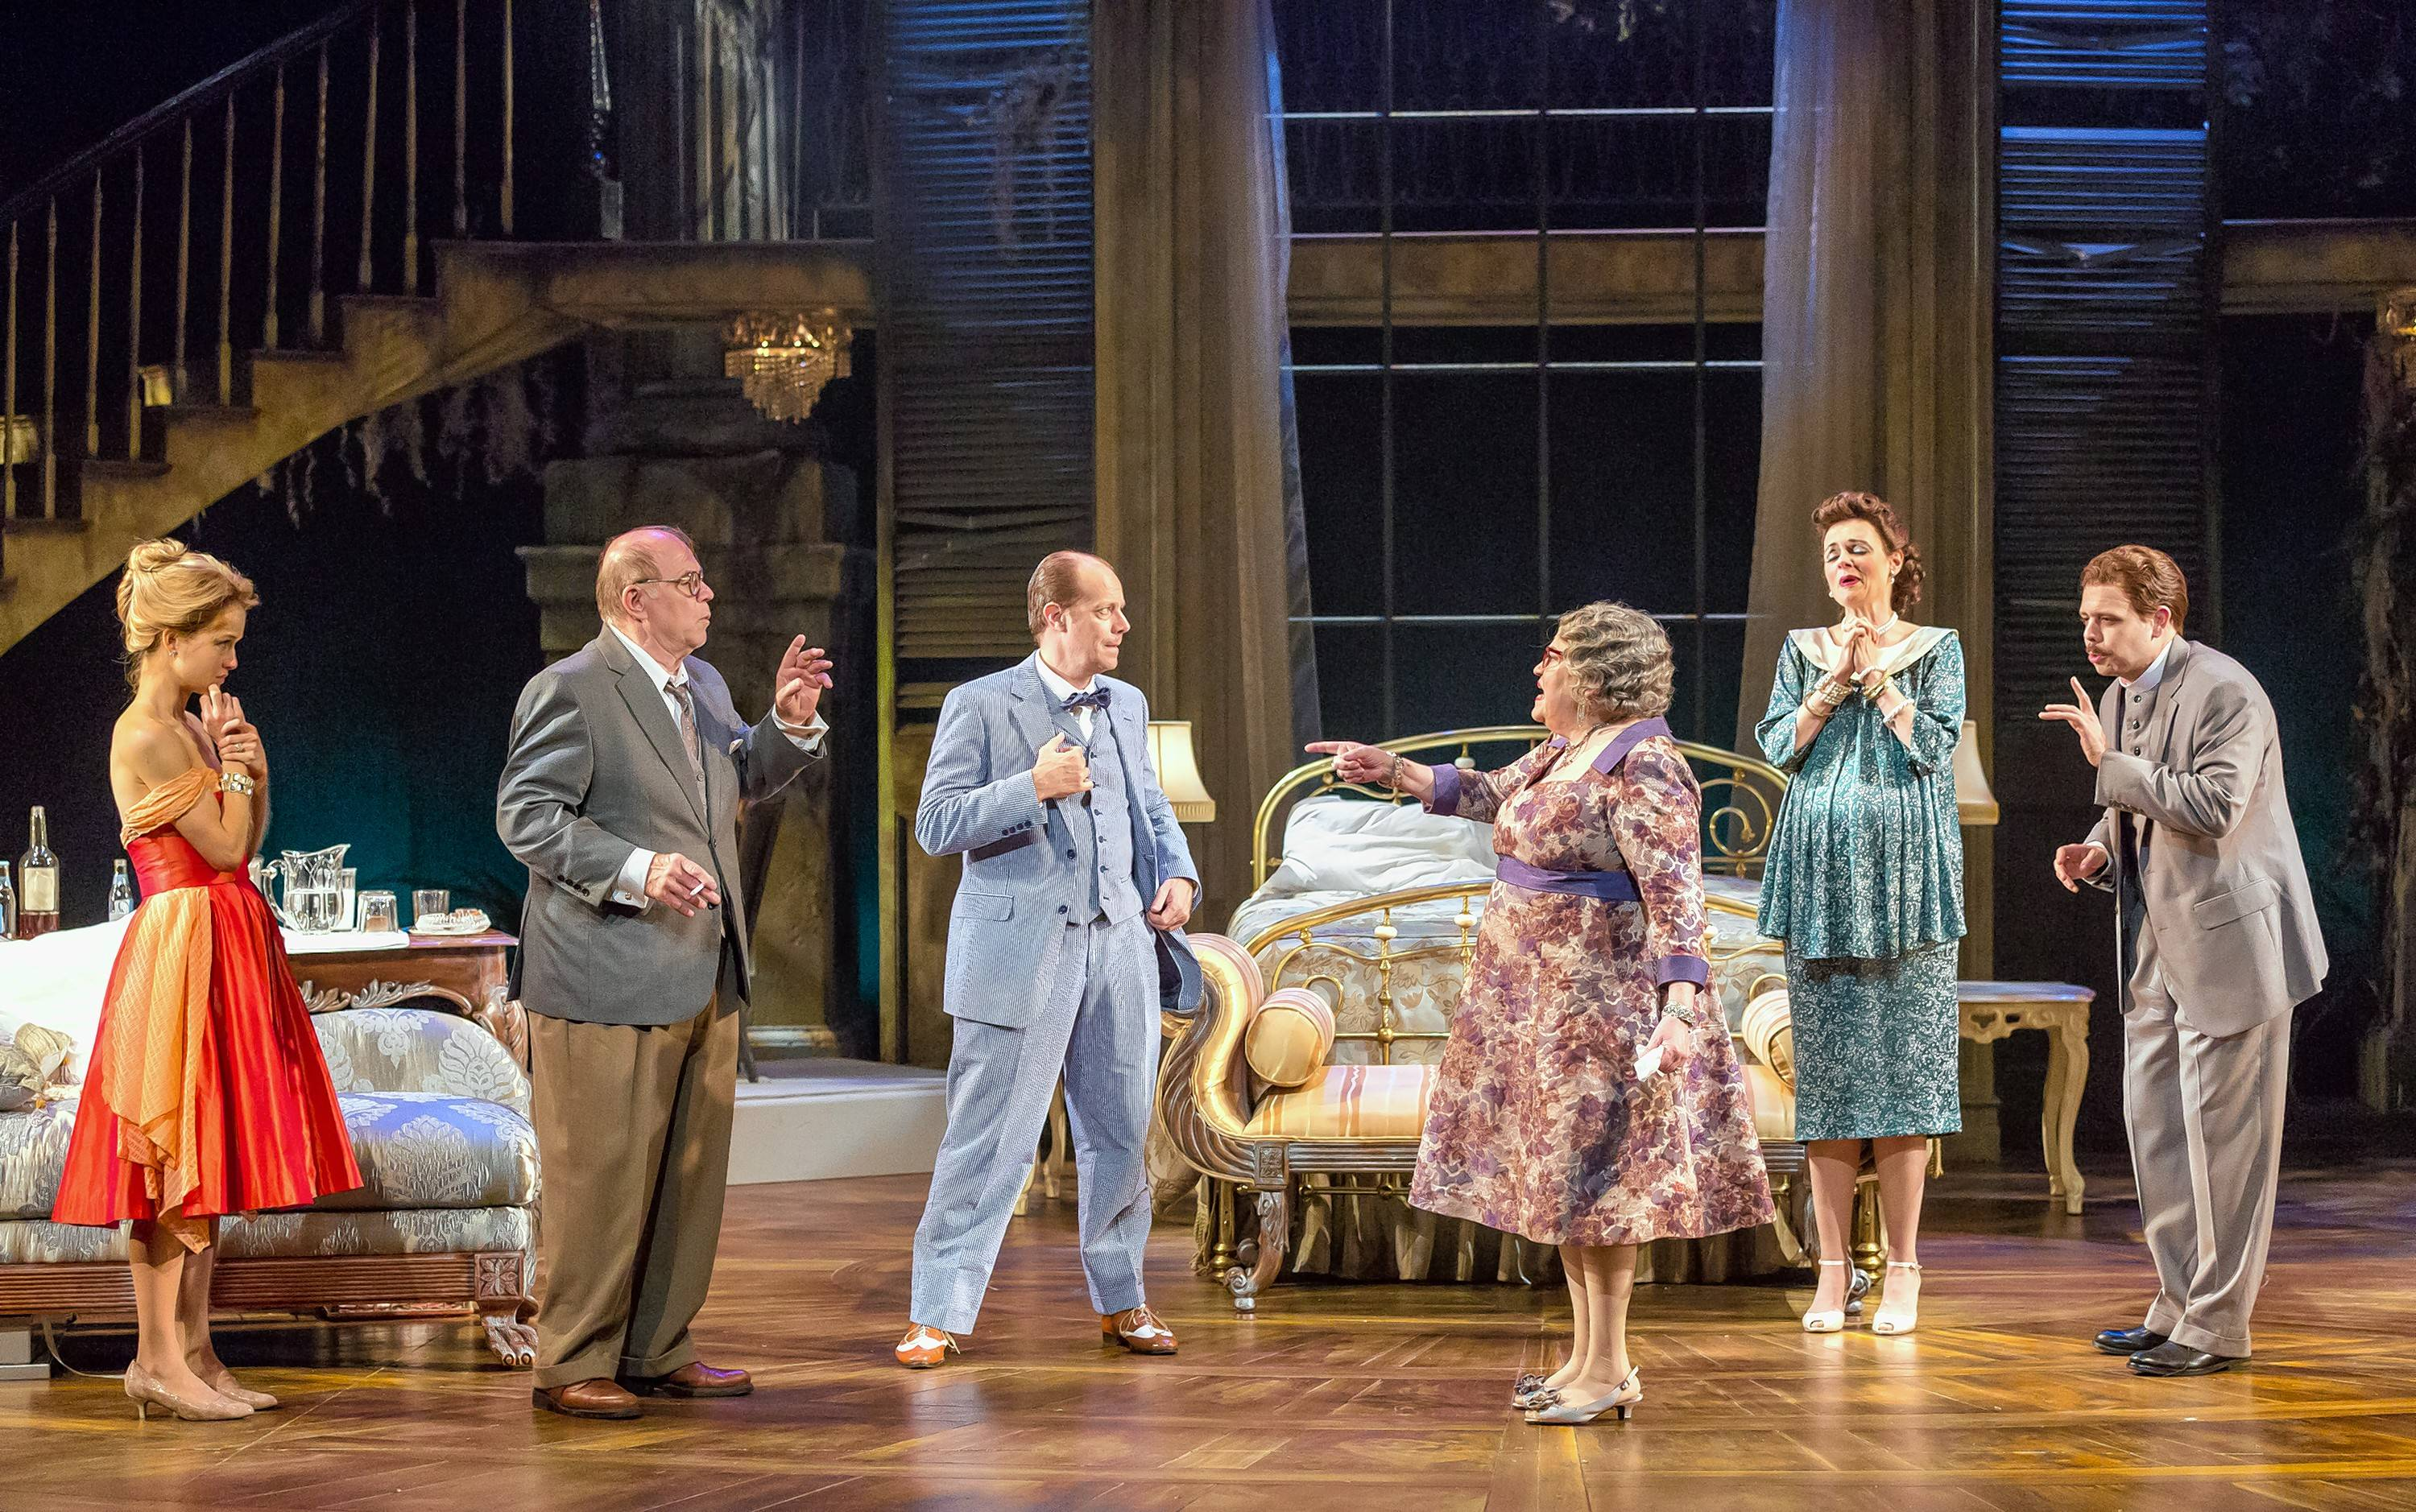 """Friends and family members attempt to break the news of her husband's fatal diagnosis to Big Mama (Cindy Gold, third from right) in director Marcia Milgrom Dodge's operatic revival of """"Cat on a Hot Tin Roof"""" at Drury Lane Theatre in Oakbrook Terrace."""